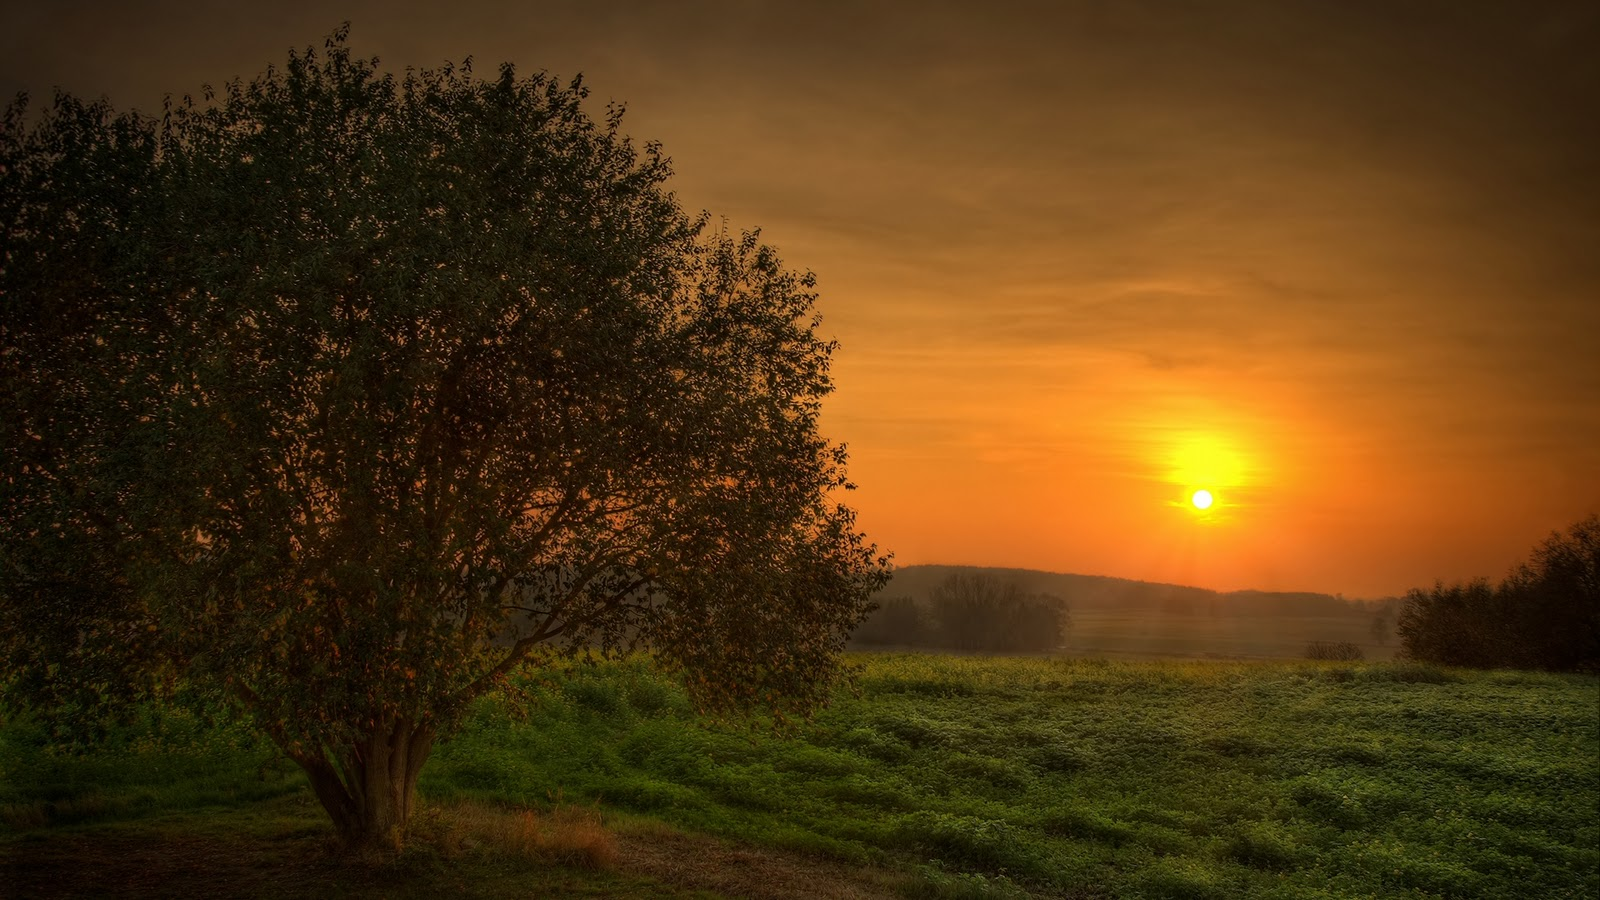 Nature Tree And Sunset Wallpaper